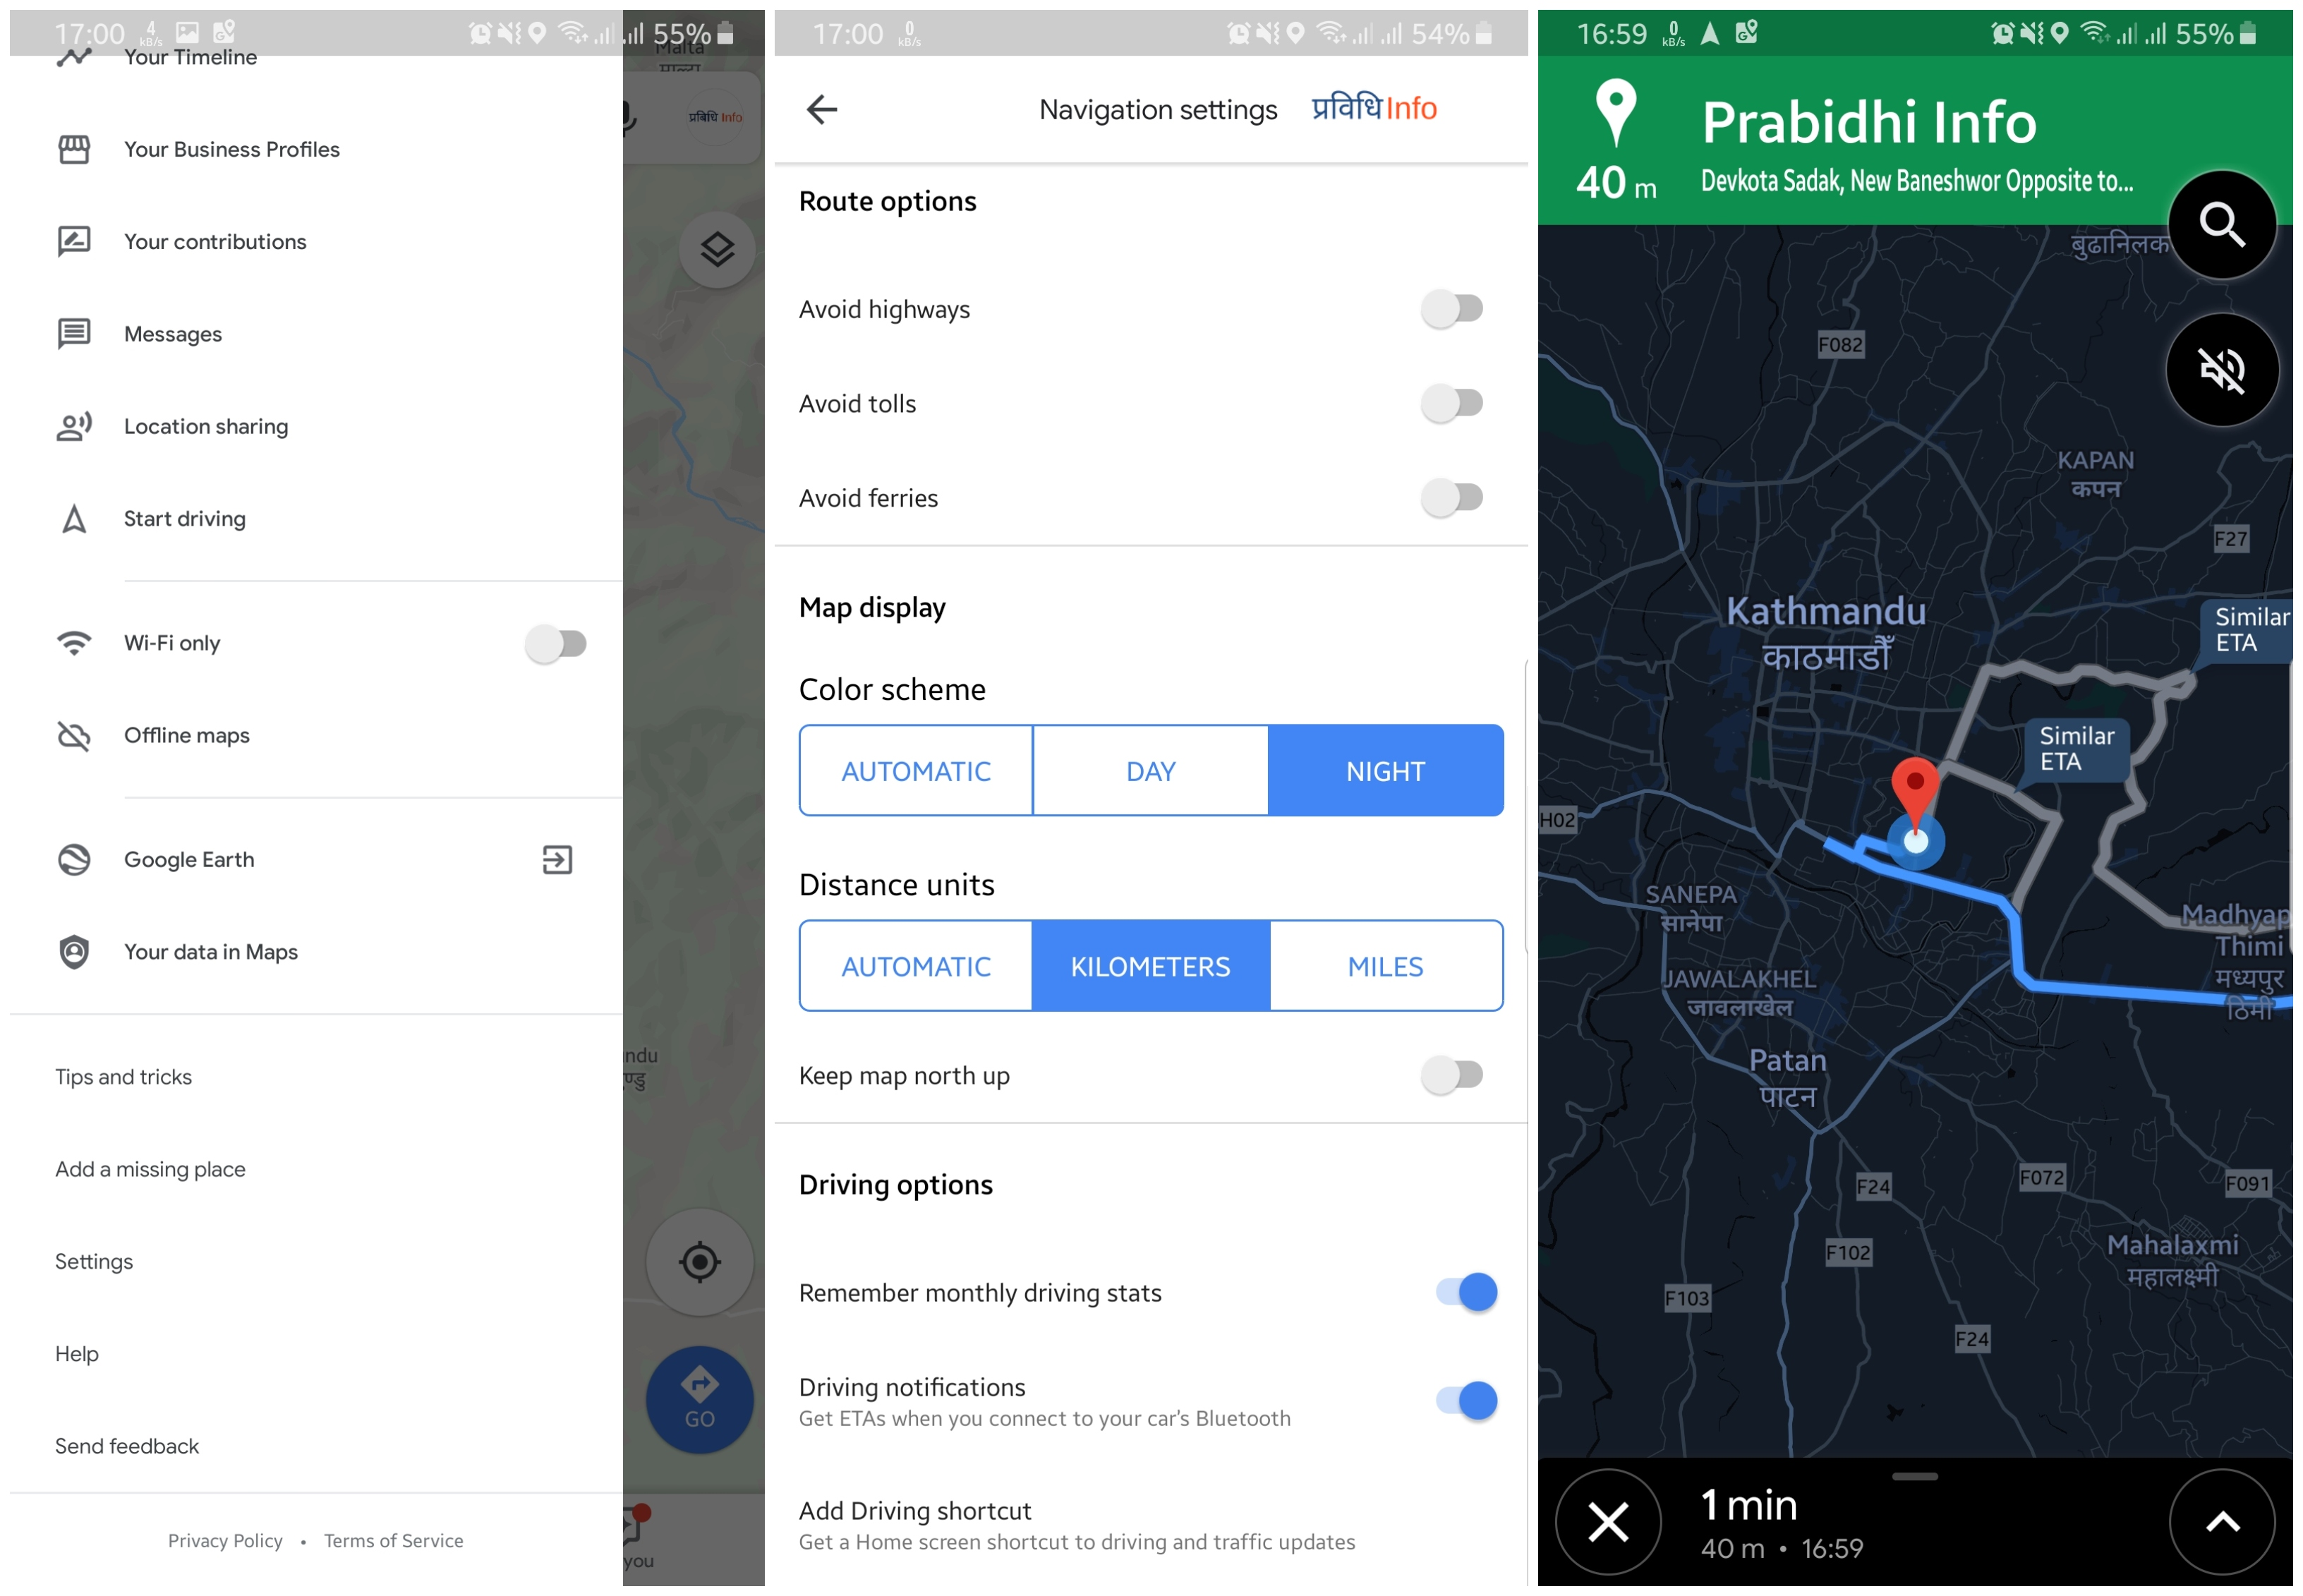 How to enable Night Mode on Google Maps Android